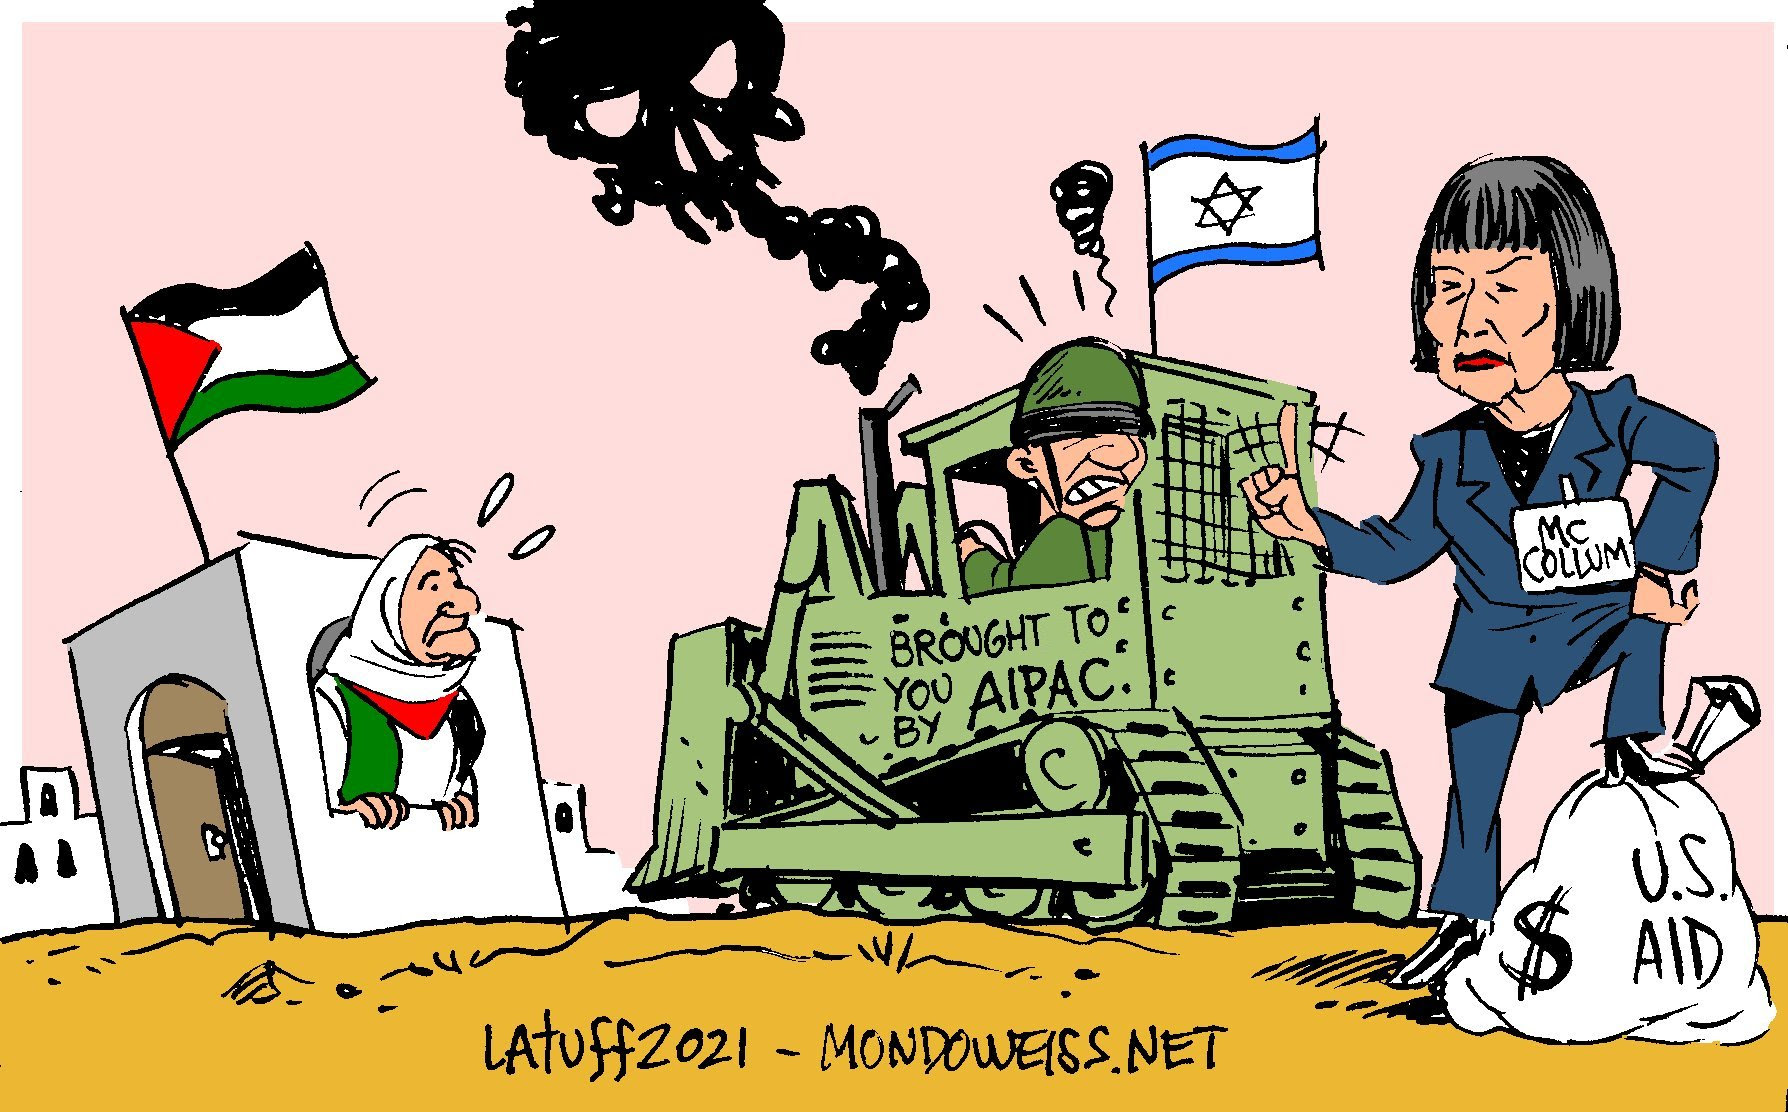 """Carlos Latuff on Twitter: """"I applaud @BettyMcCollum04 for her courage on  releasing this bill, seeking to end US complicity for #Israel human rights  violations against Palestinians. https://t.co/UhFZ5twERQ Cartoon  @Mondoweiss… https://t.co/ezpiVcHVyG"""""""